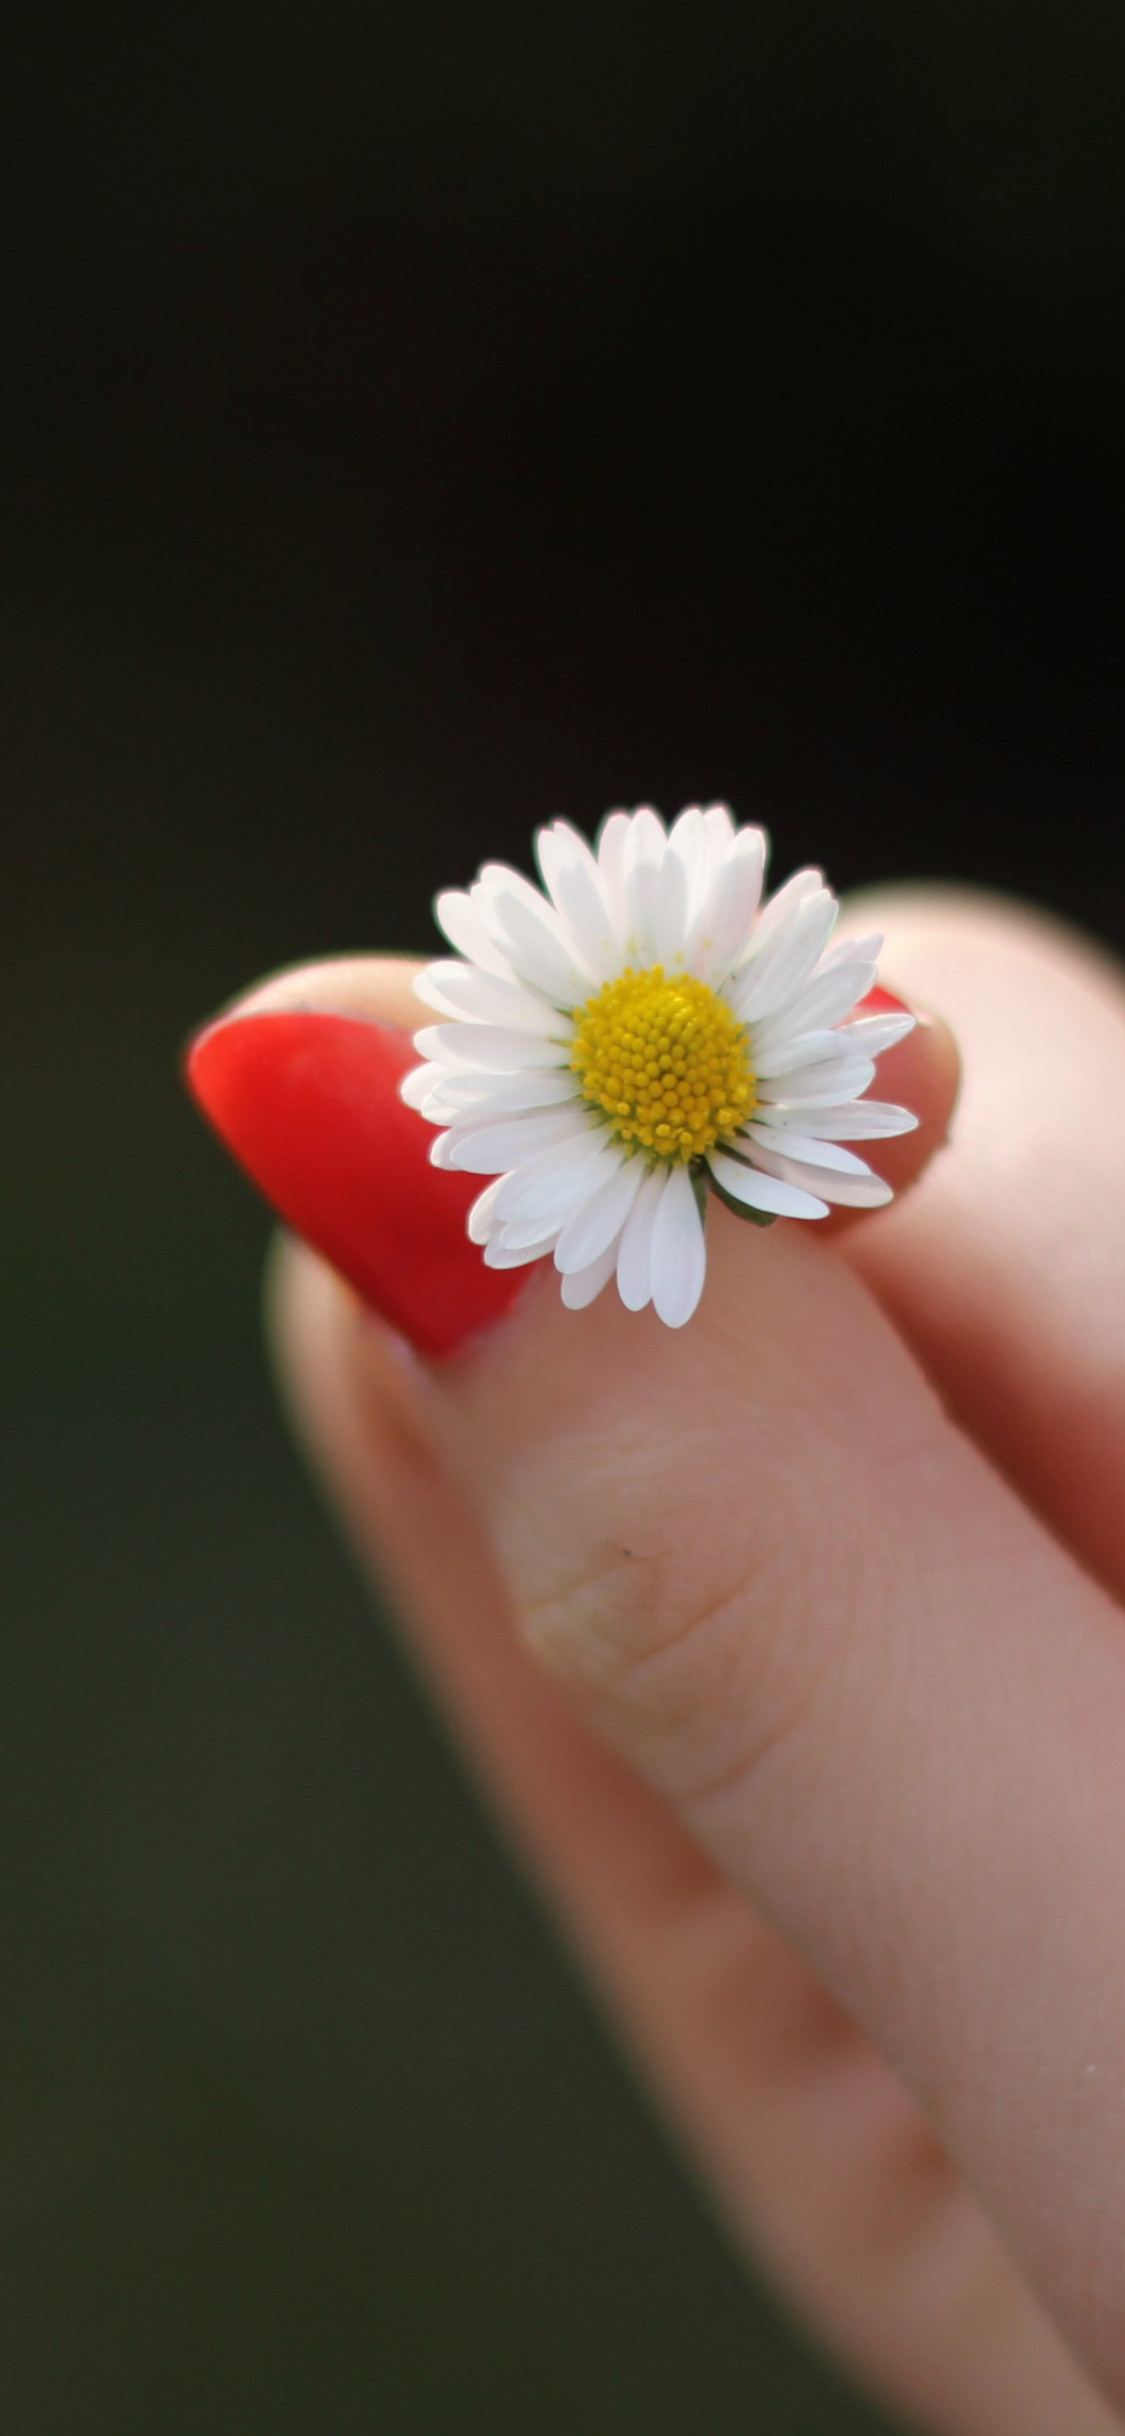 Girl with red nails and a daisy flower wallpaper 1125x2436